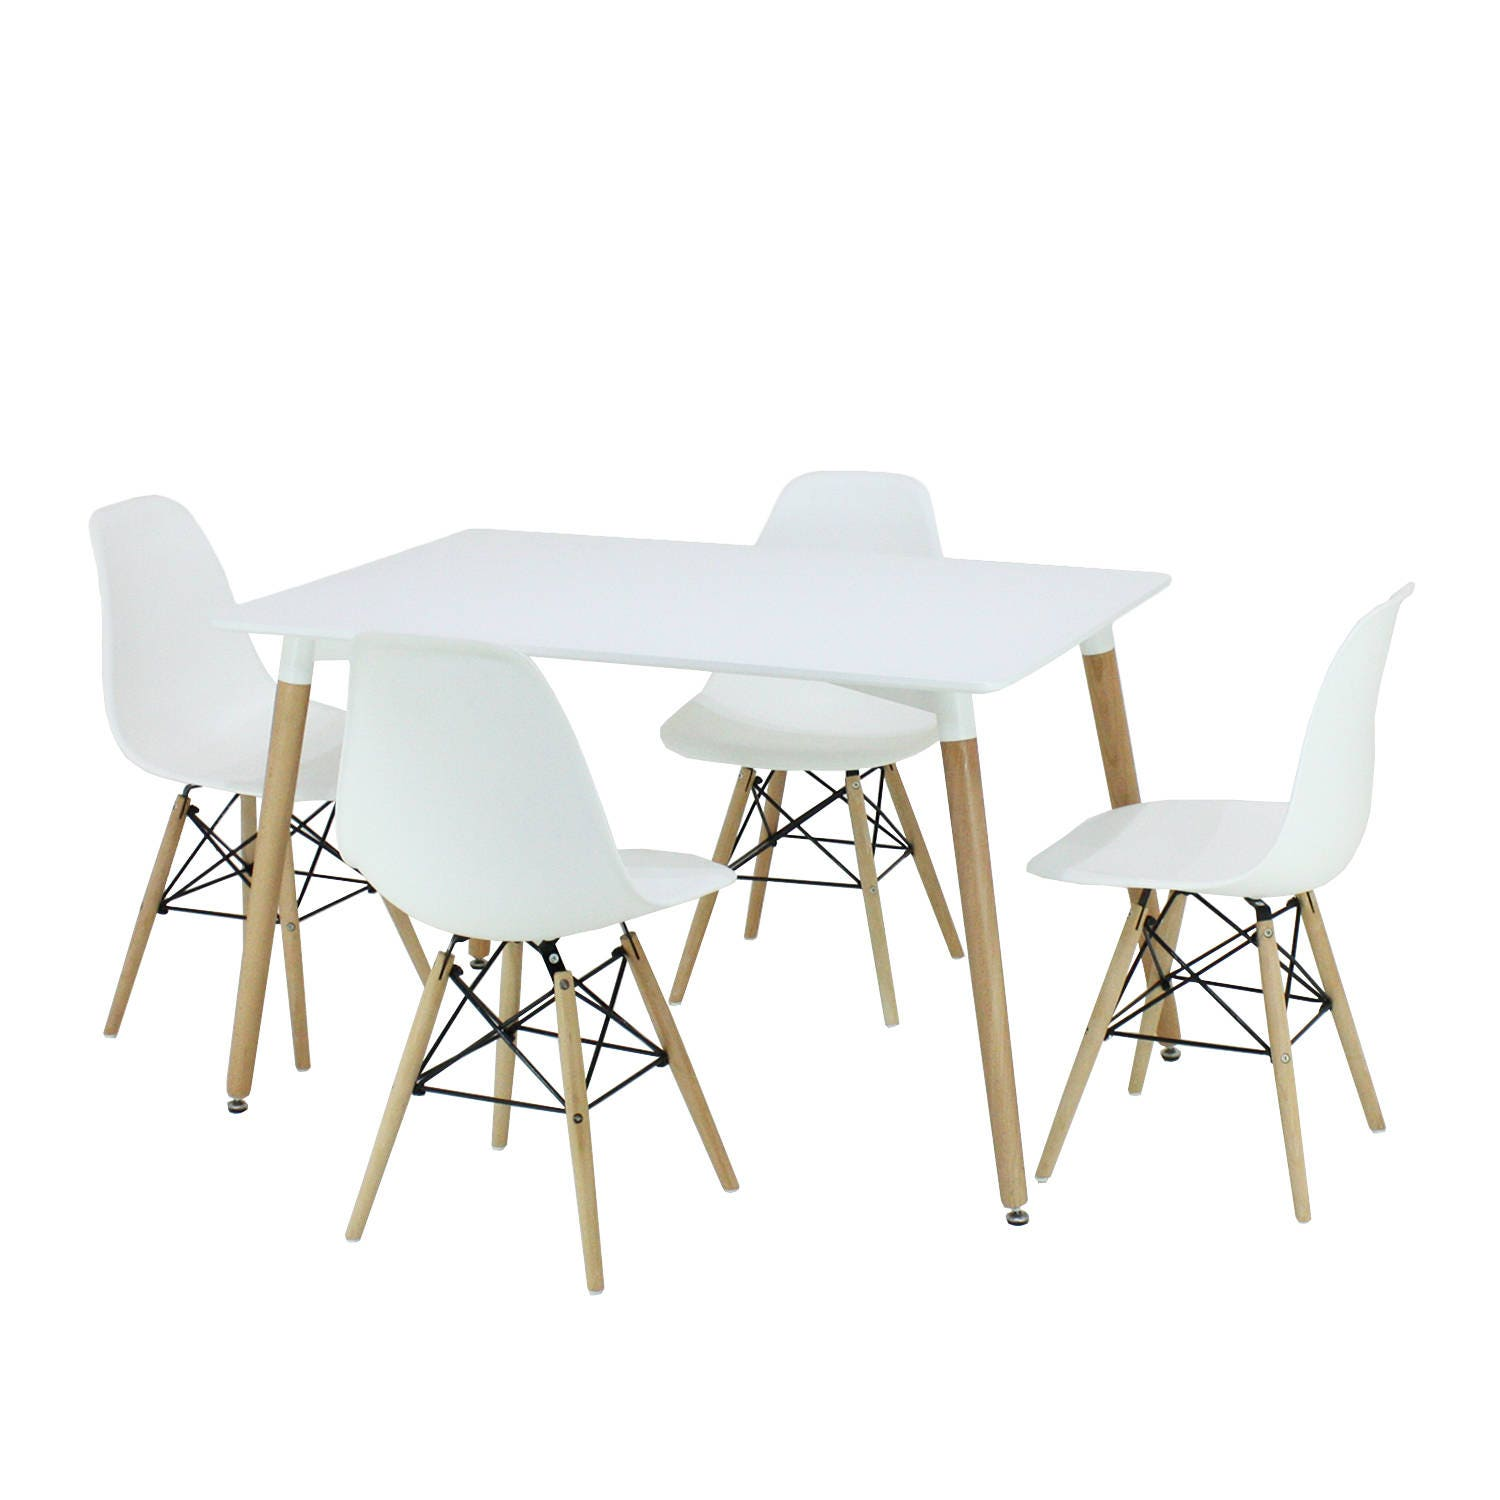 PN Homewares Dining Table White and Set of 4 White EAMES DSW Style Chair design  Moda Chair  Set Retro Modern Chairs Scandinavian  Style